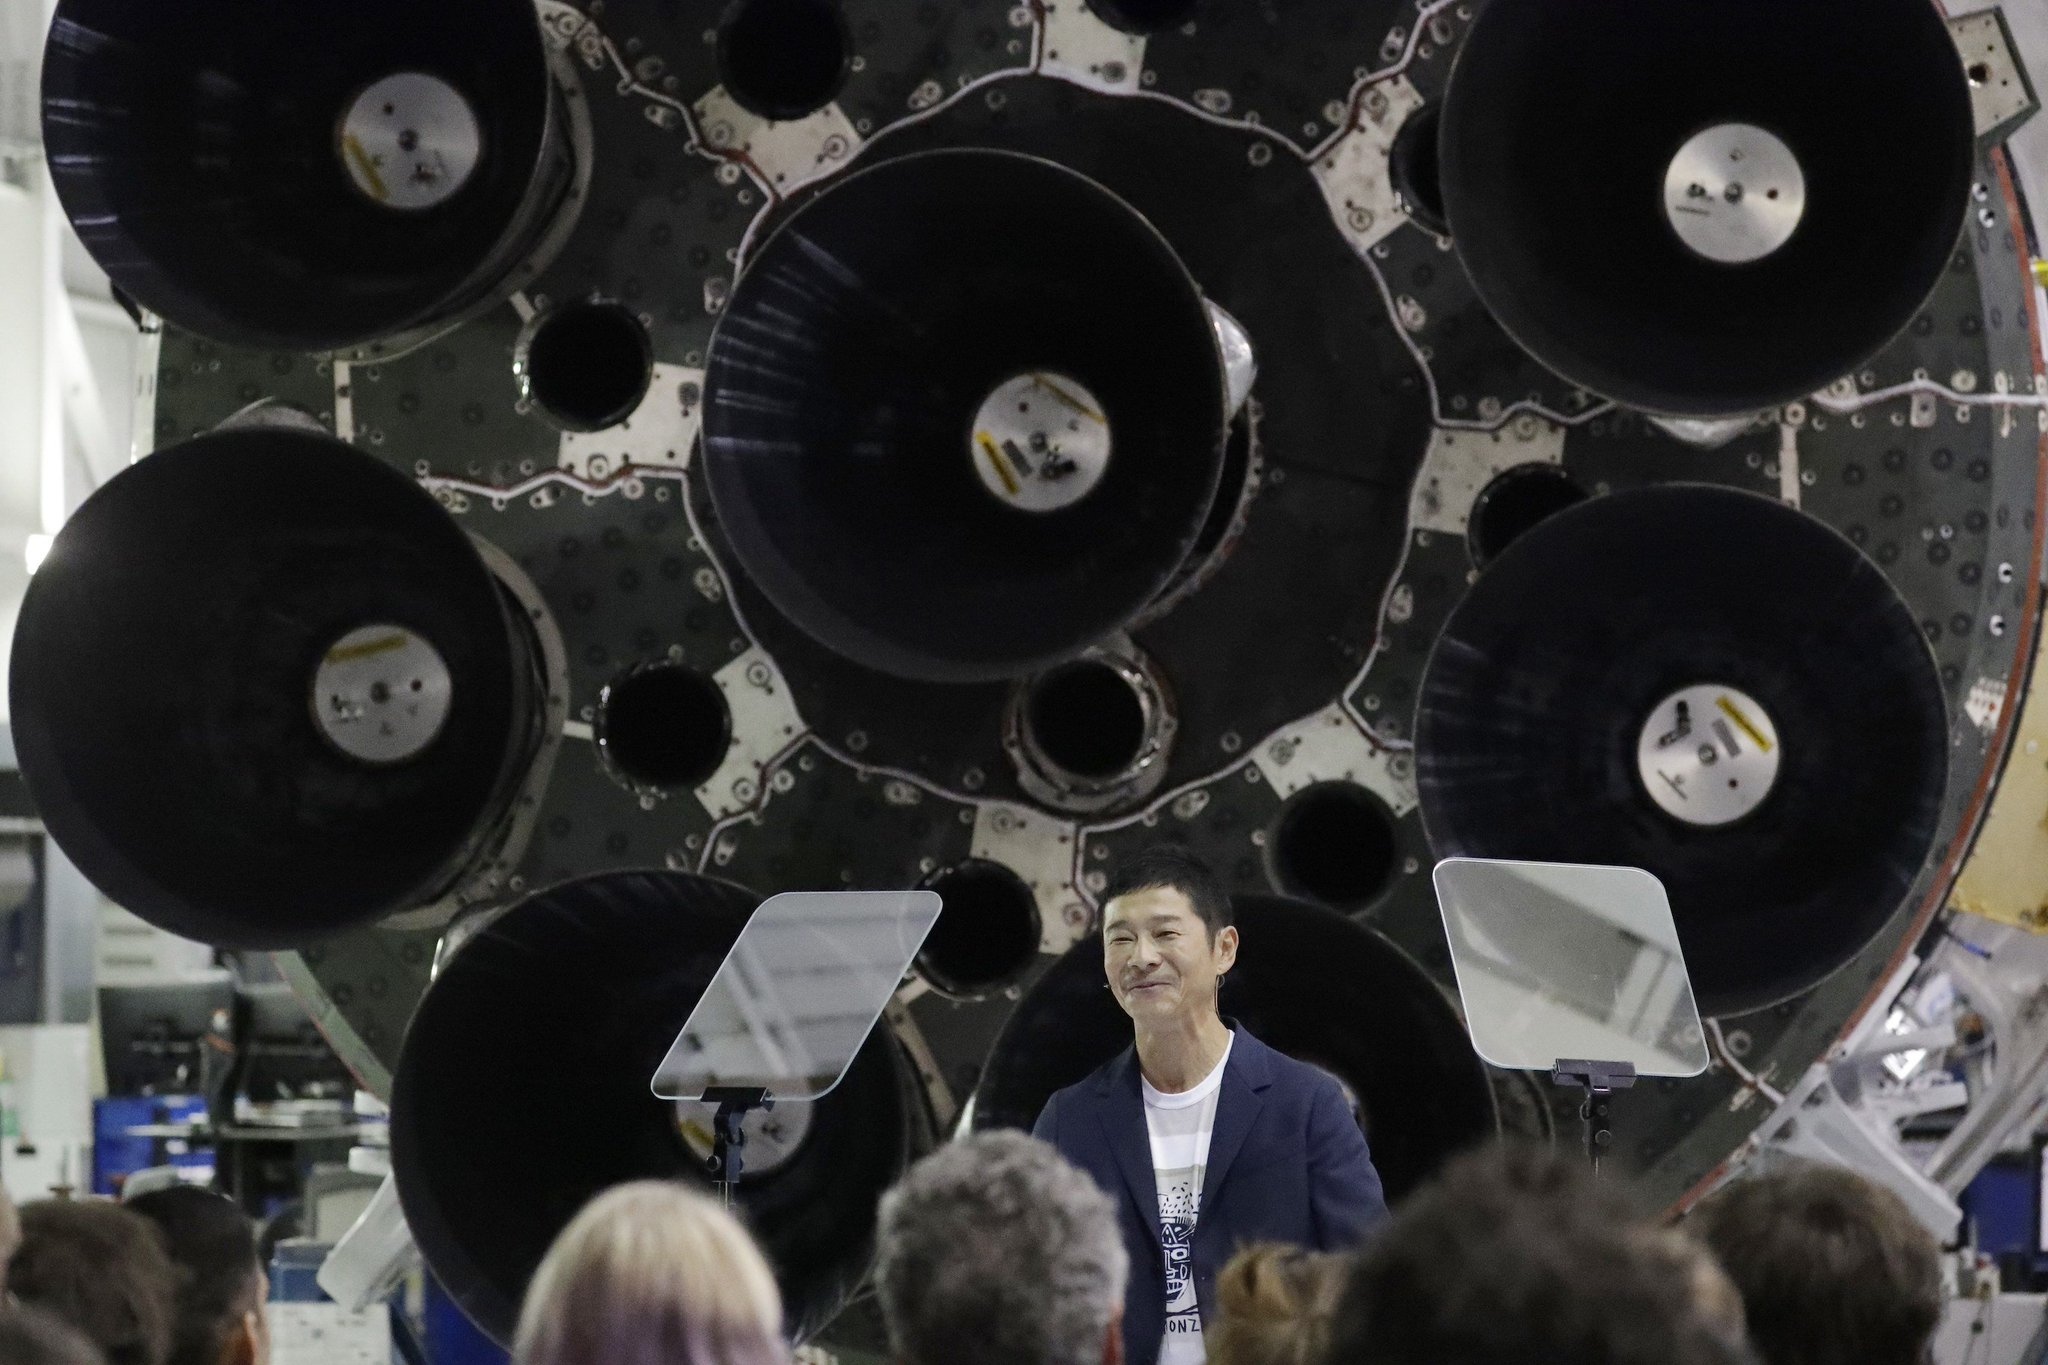 Who is Yusaku Maezawa? Everything you need to know about the first-ever moon tourist https://t.co/eAAgVv7vsK https://t.co/XRyzPT3J6g